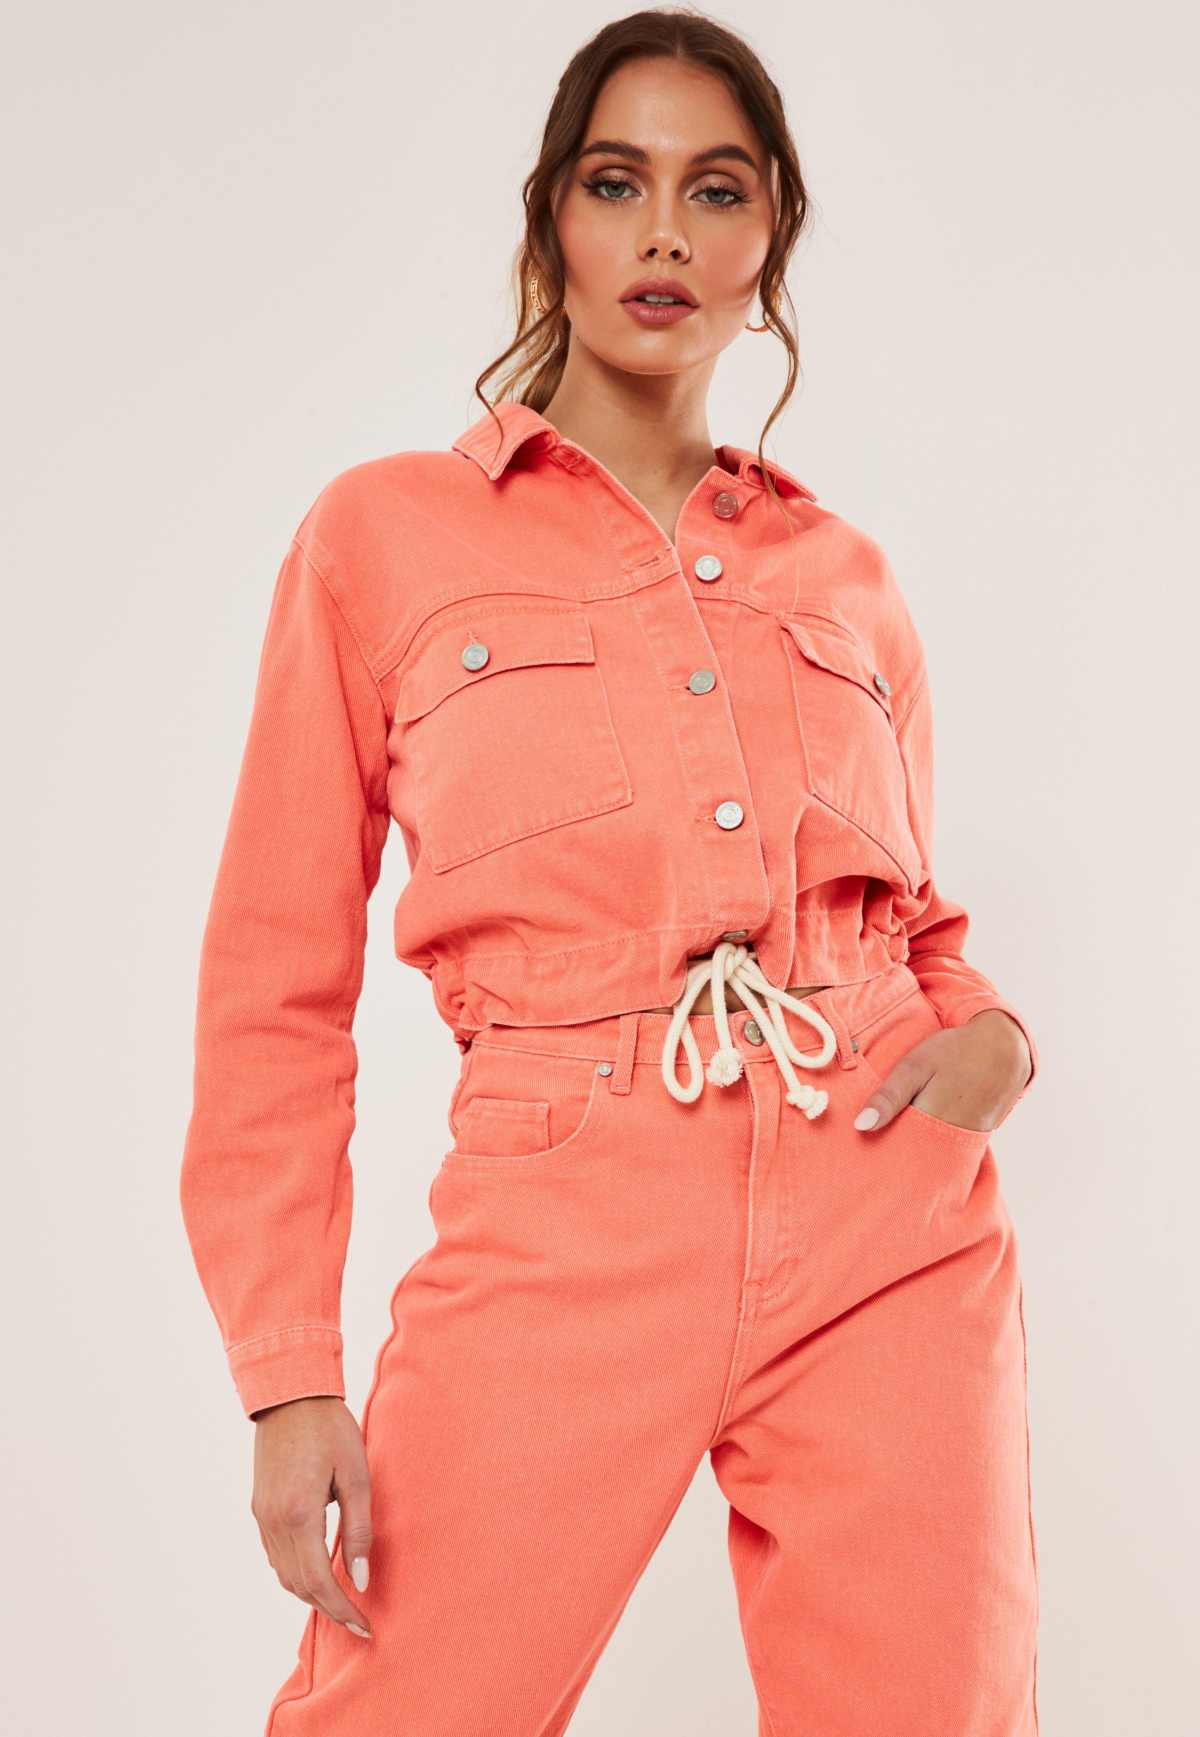 orange co ord rope waist detail cropped denim jacket by Misguided, available on missguided.eu for EUR28 Yovanna Ventura Outerwear Exact Product